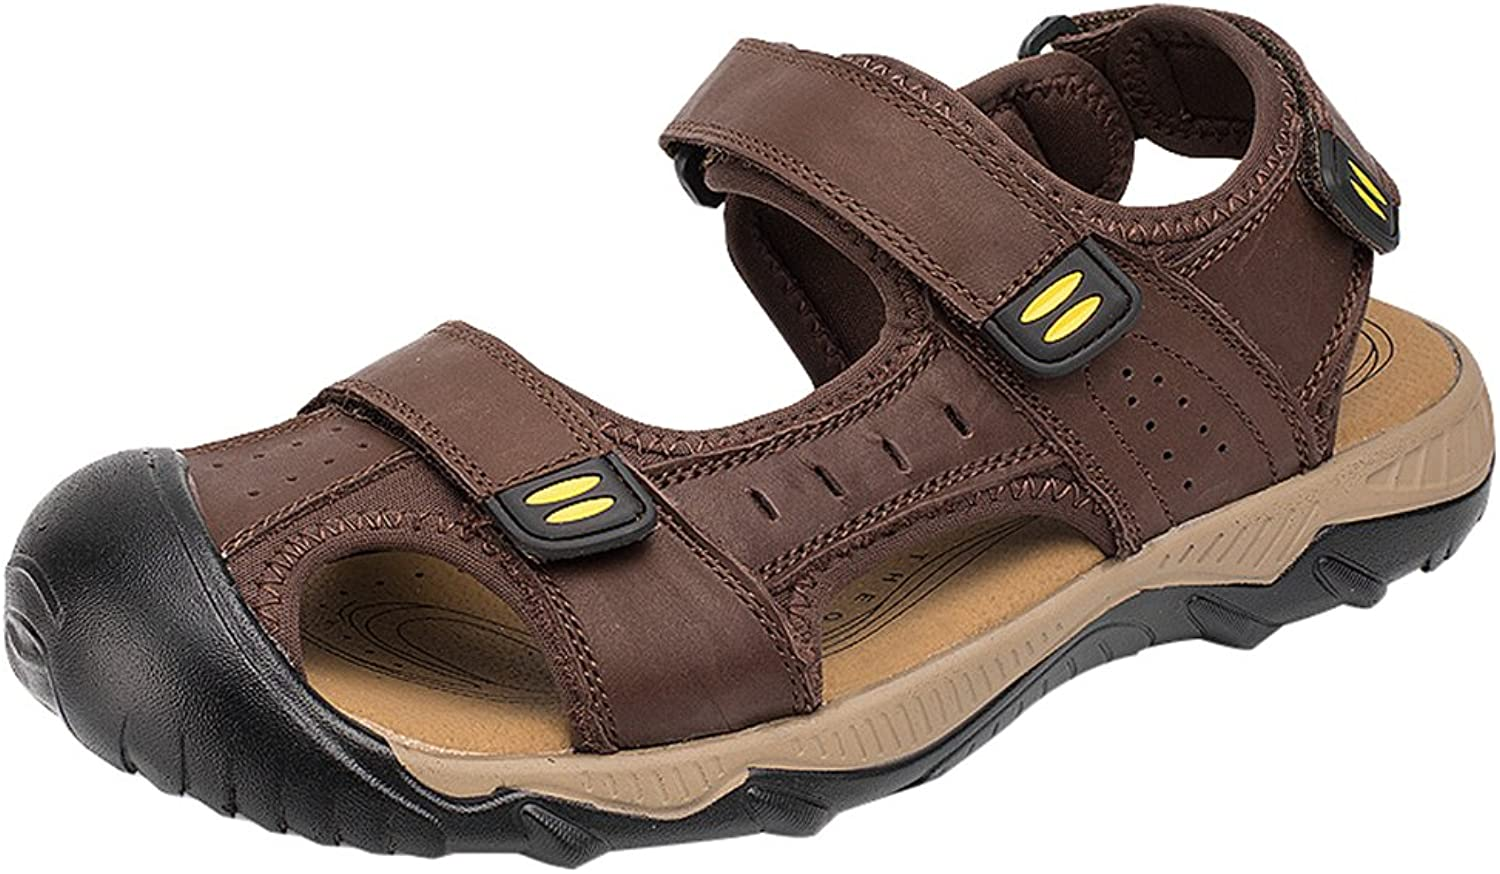 AGOWOO Women's Sandles Outdoor Closed Toe Hiking Beach Sandals